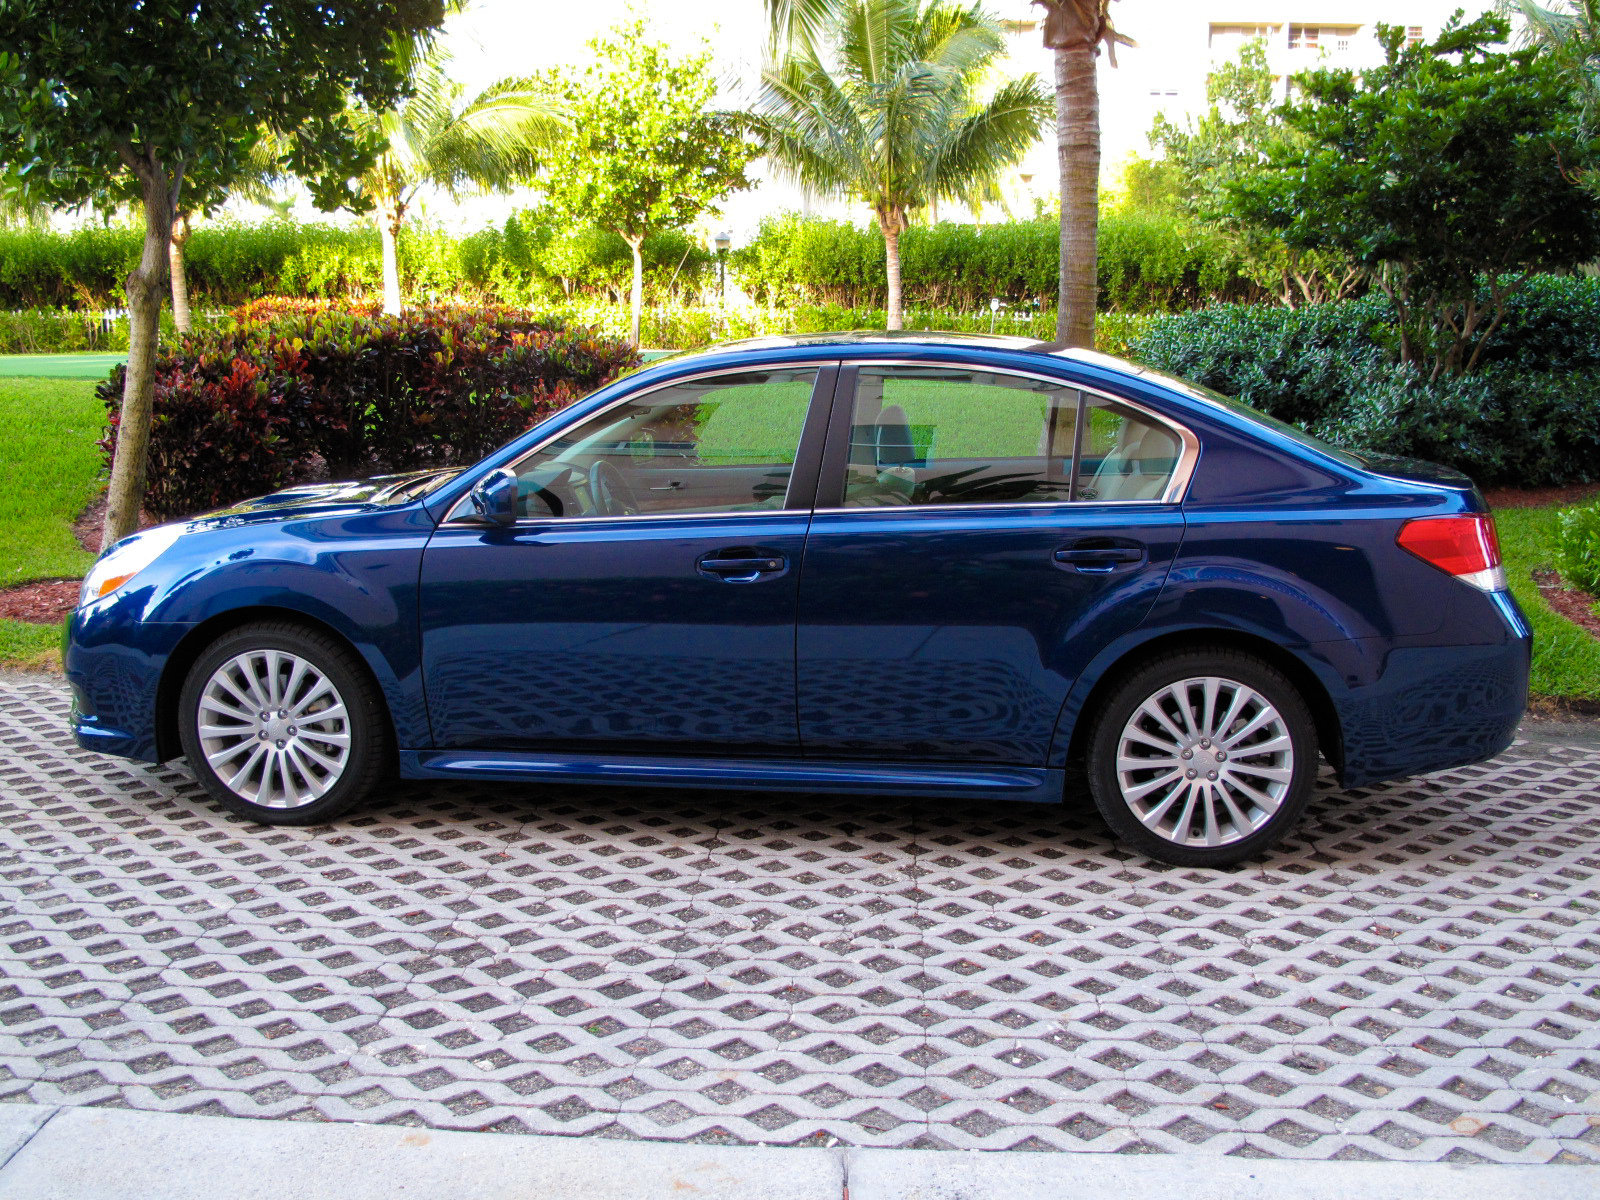 2010 subaru legacy 2 5 gt picture 345507 car review top speed. Black Bedroom Furniture Sets. Home Design Ideas